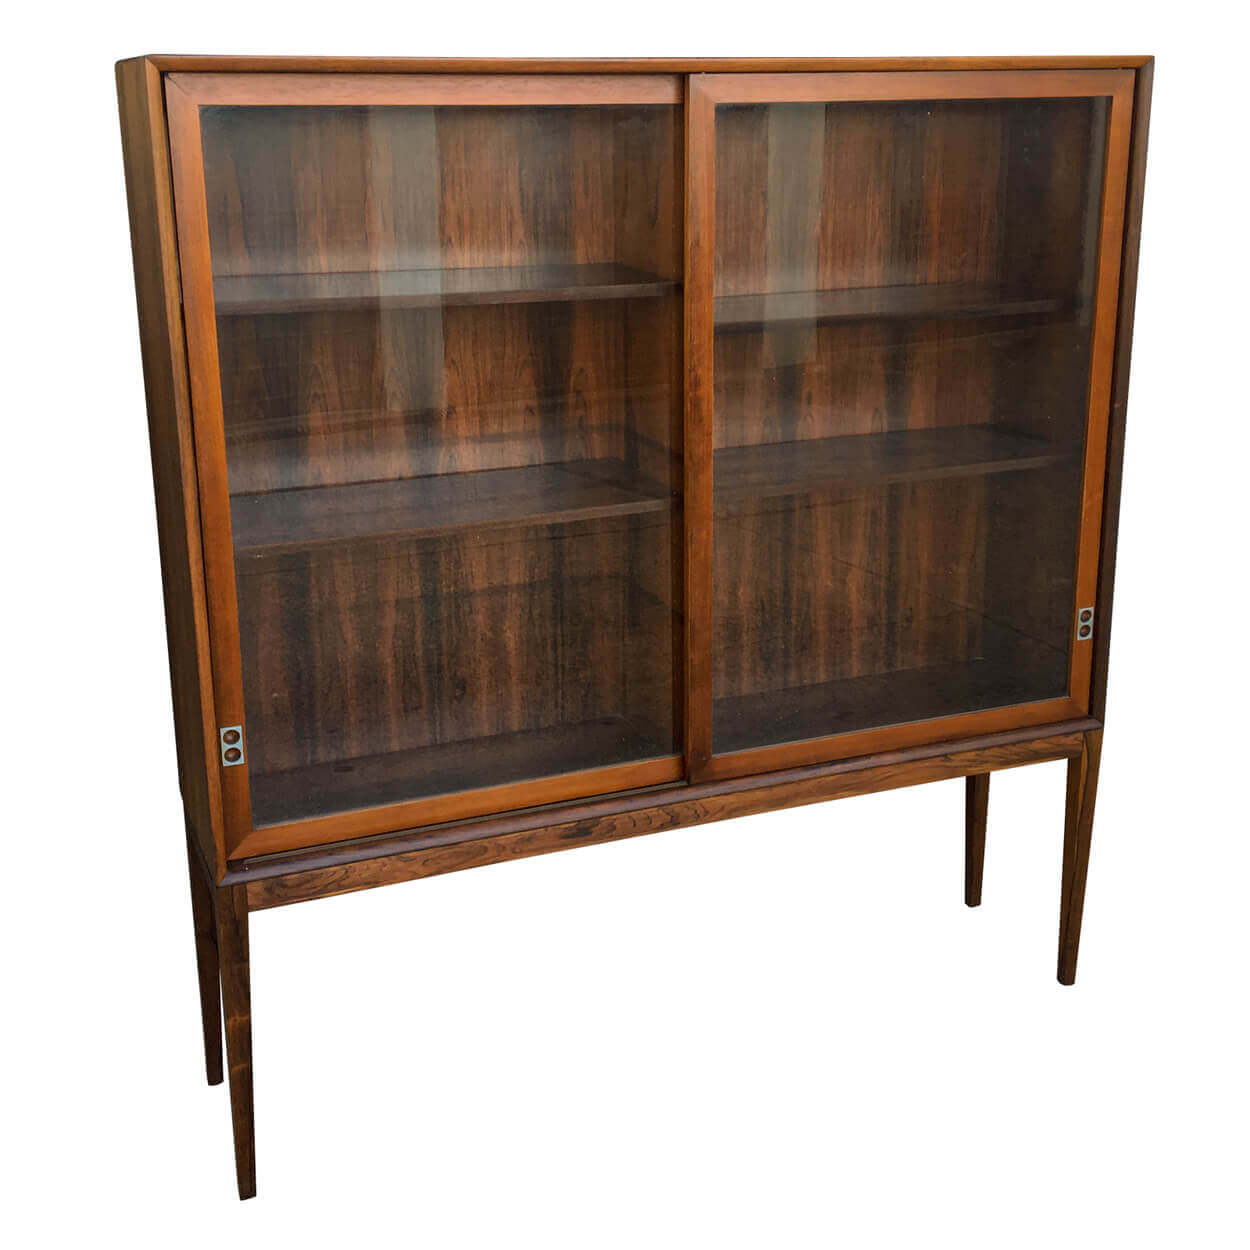 Great Dane rosewood cabinet front